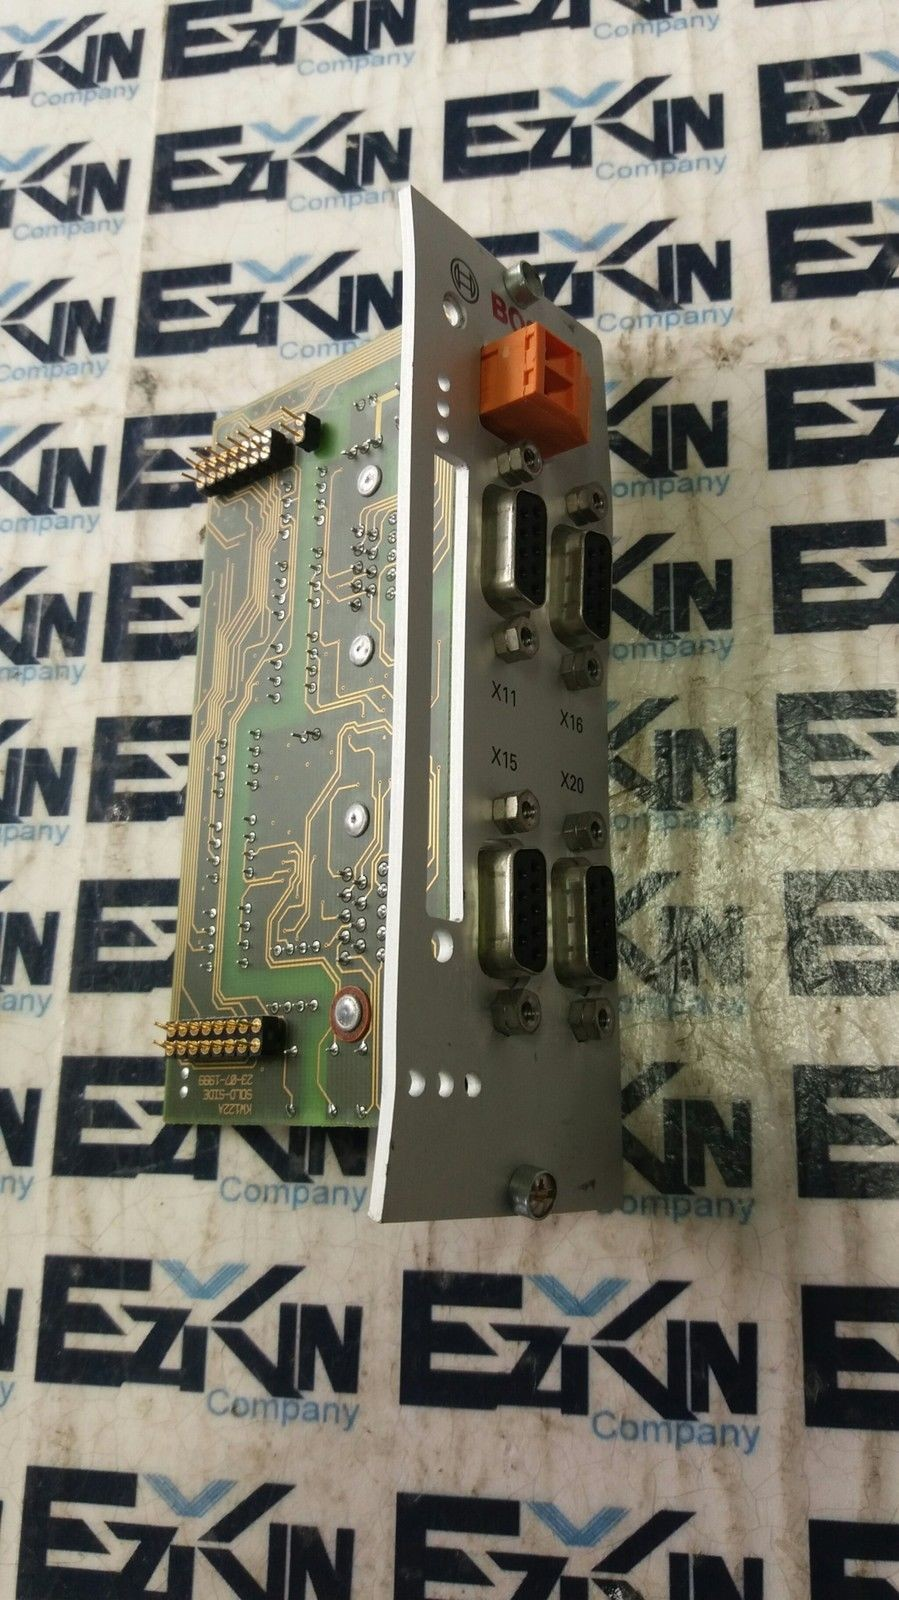 BOSCH 8101305361 EXP4 CIRCUIT BOARD KW122A SOLIDSIDE (Frame is Bent)